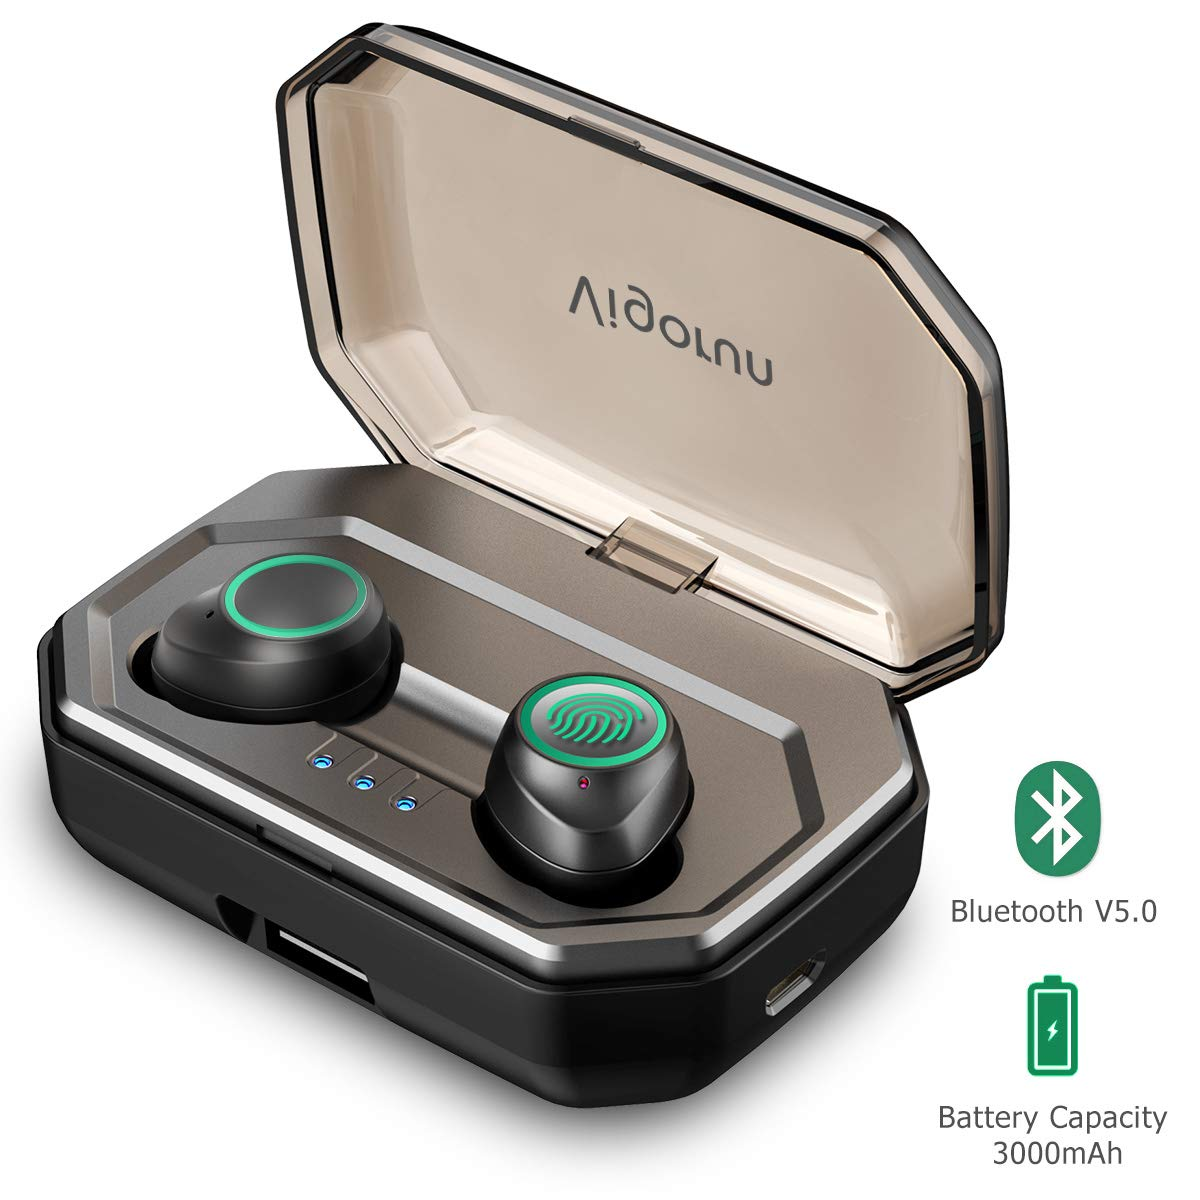 Auricolari Bluetooth 5.0 Vigorun Cuffie Bluetooth Wireless Senza Fili 3000mAh Custodia da Ricarica 100ore